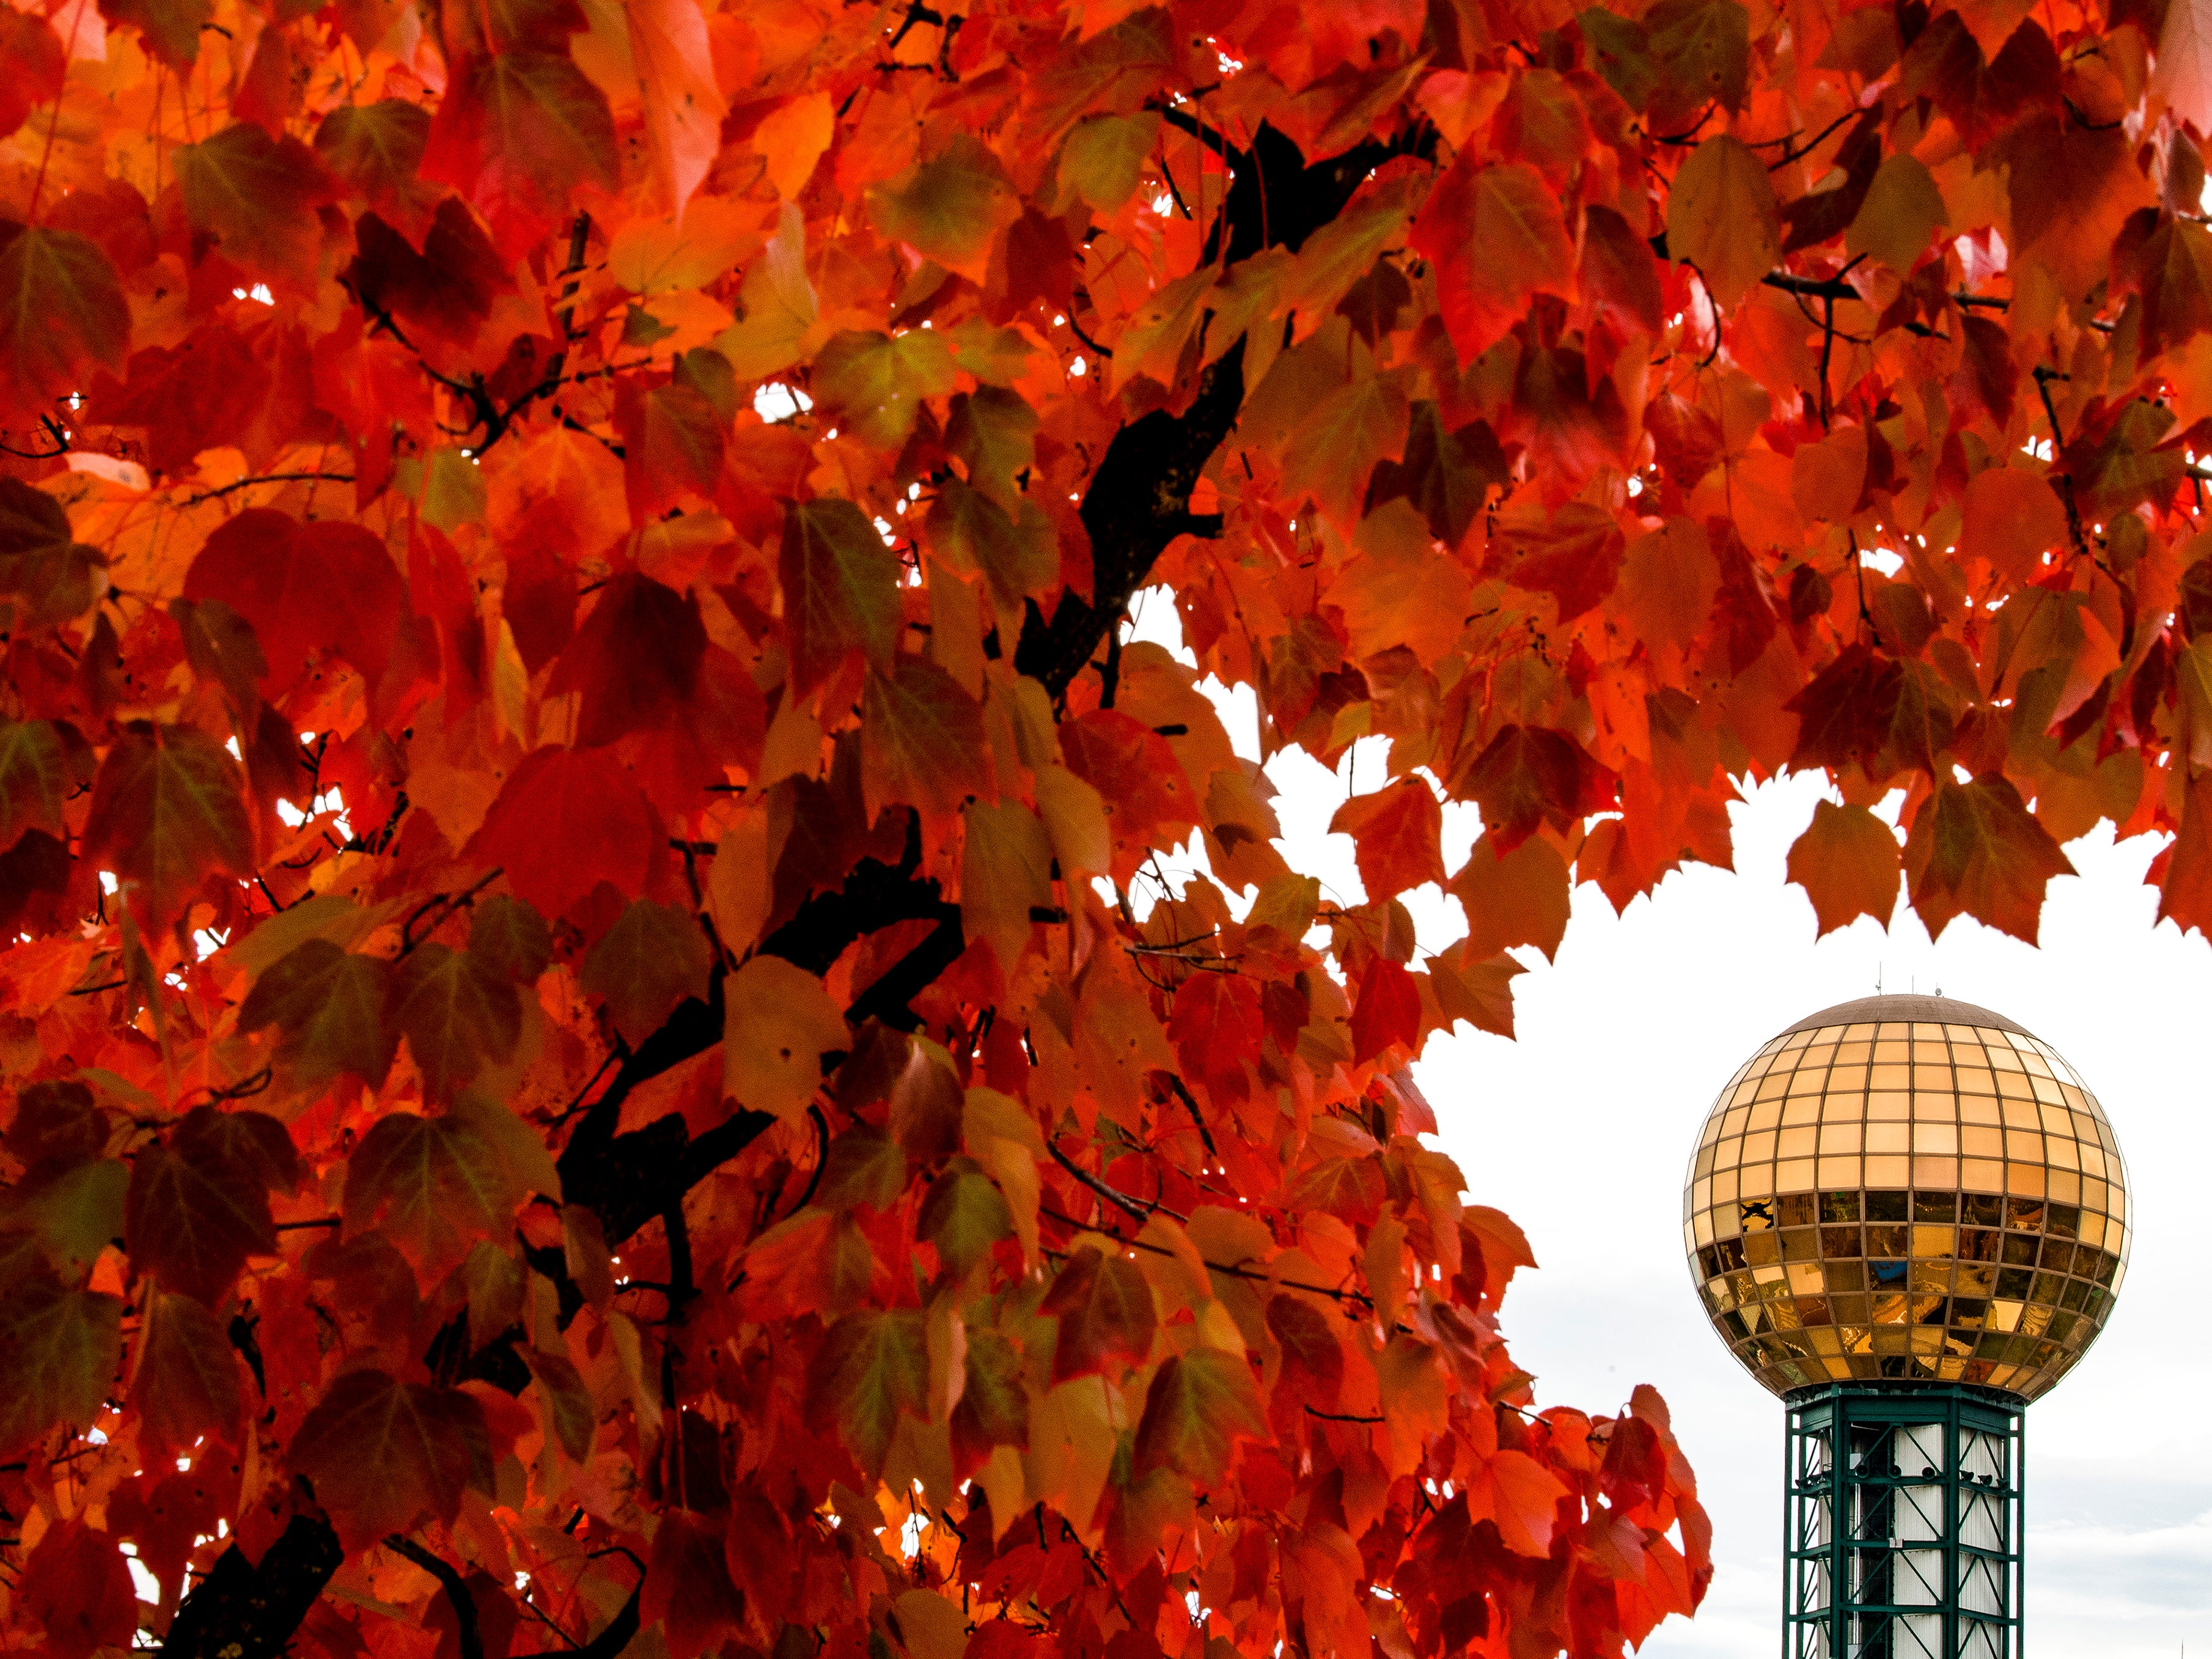 The Sunsphere is framed by the red leaves of a tree standing by the Knoxville Museum of Art on Thursday, November 1, 2018.